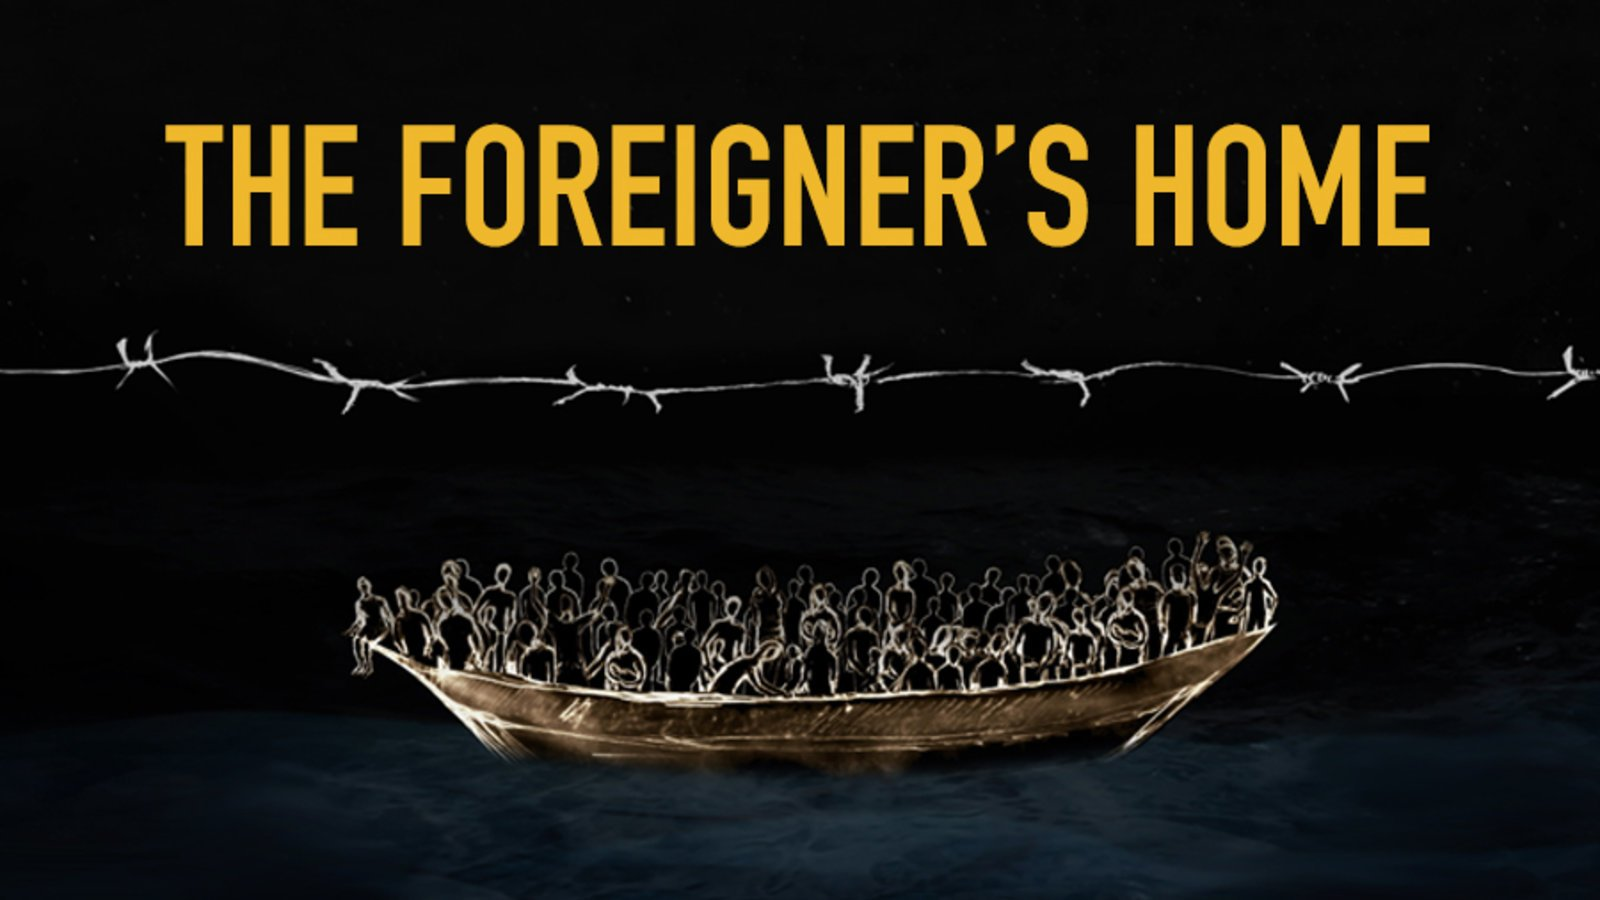 The Foreigner's Home - Toni Morrison at the Louvre